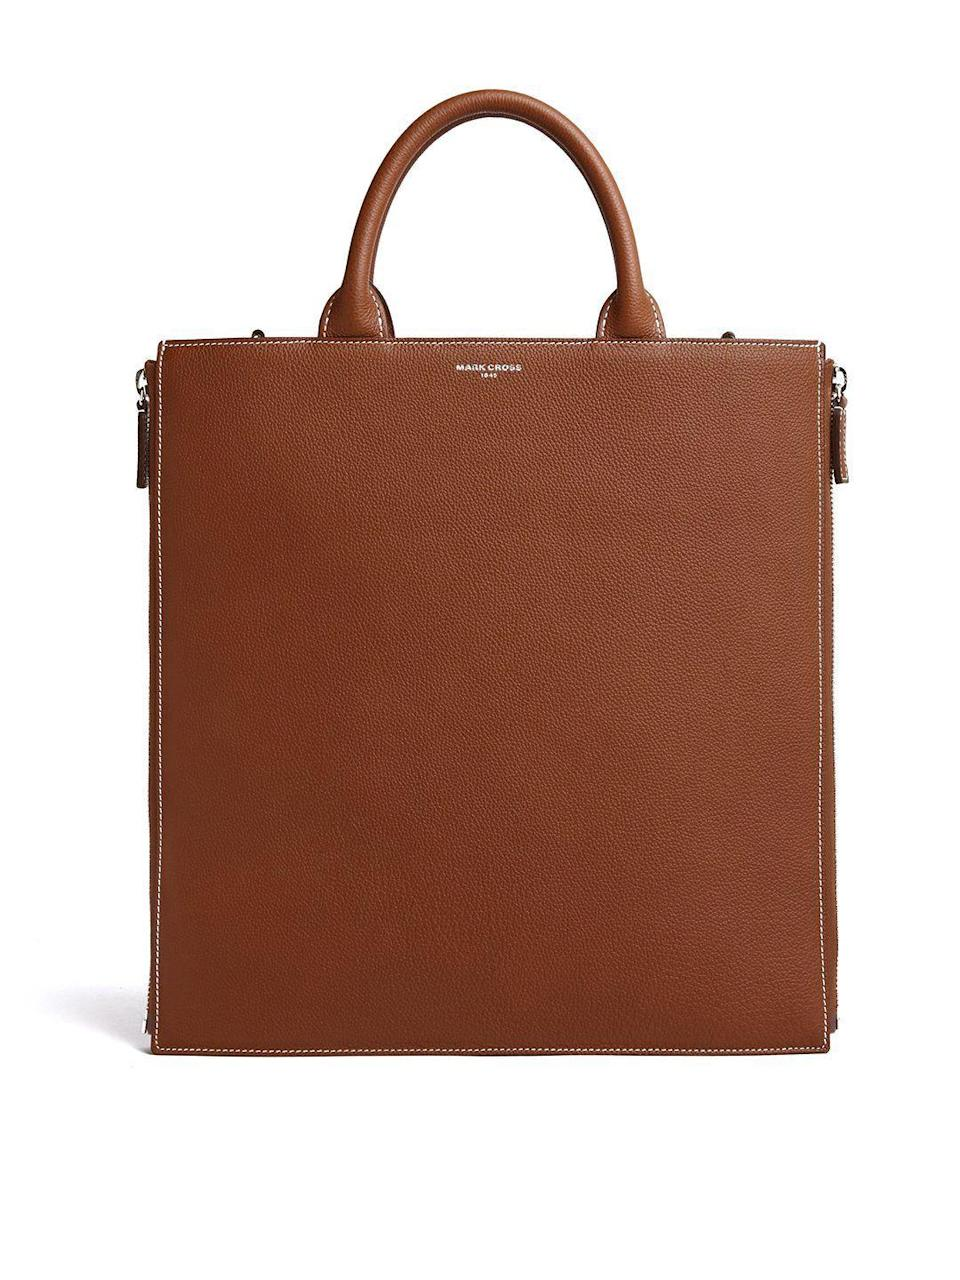 """<p><strong>Mark Cross </strong></p><p>markcross.com</p><p><strong>$1790.00</strong></p><p><a href=""""https://www.markcross.com/products/sidney-leather-tote-bag-tumbled-grain-acorn-palladium?variant=32907099275373"""" rel=""""nofollow noopener"""" target=""""_blank"""" data-ylk=""""slk:Shop Now"""" class=""""link rapid-noclick-resp"""">Shop Now</a></p><p>Chic, elegant, and made with quality leather, this is a work tote that will last a lifetime. Your significant other will want to borrow it for work as well.</p>"""